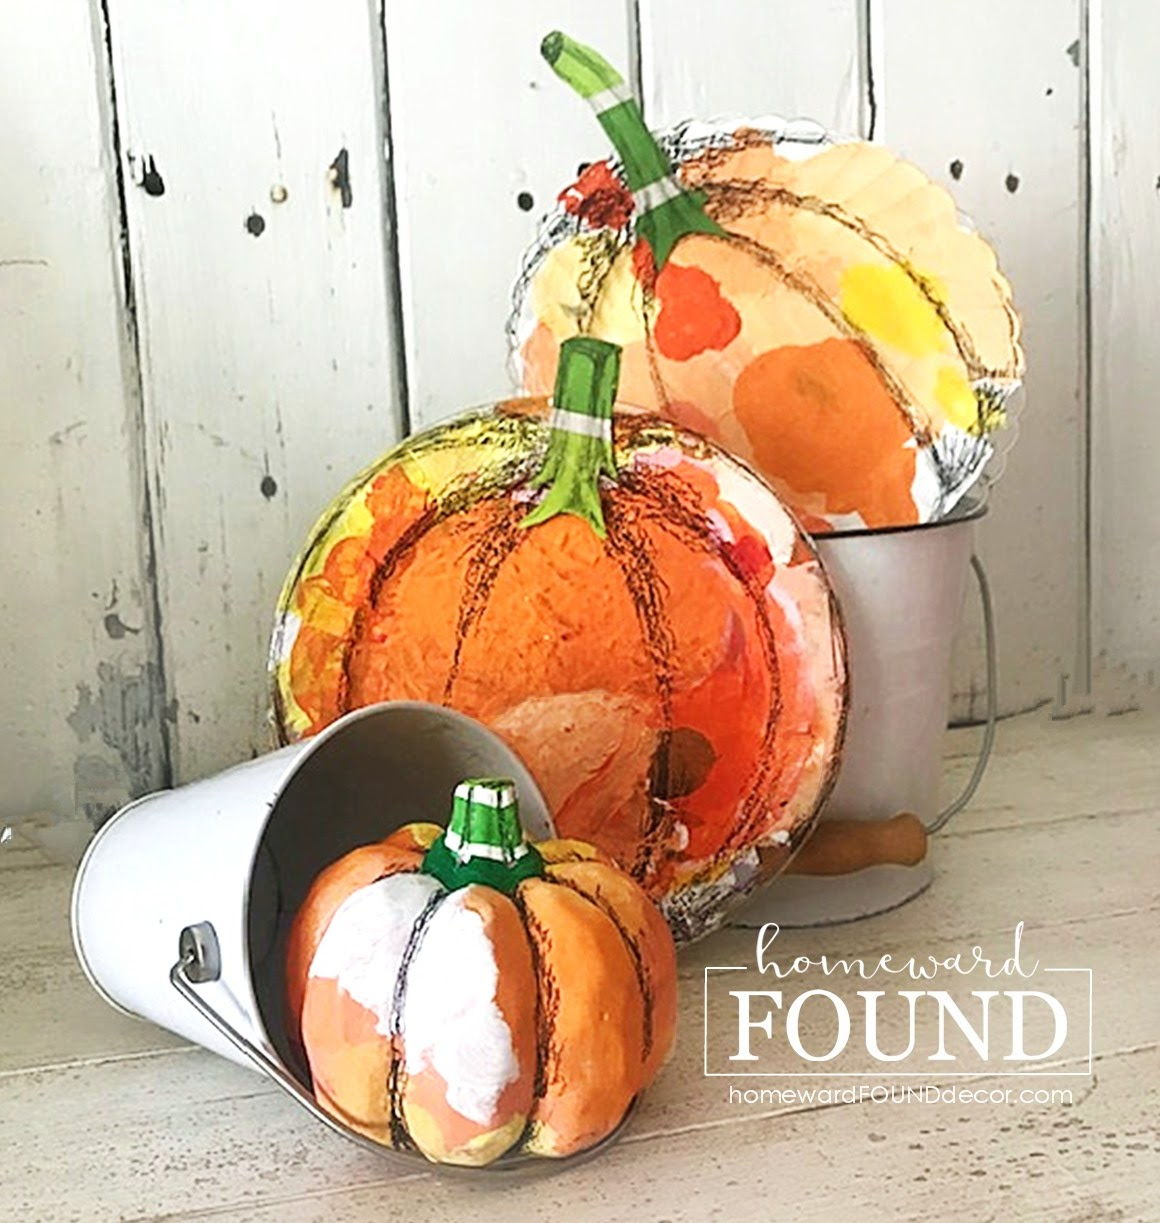 Hand painted pumpkins by Homeward Found, featured on DIY Salvaged Junk Projects 544 on Funky Junk!